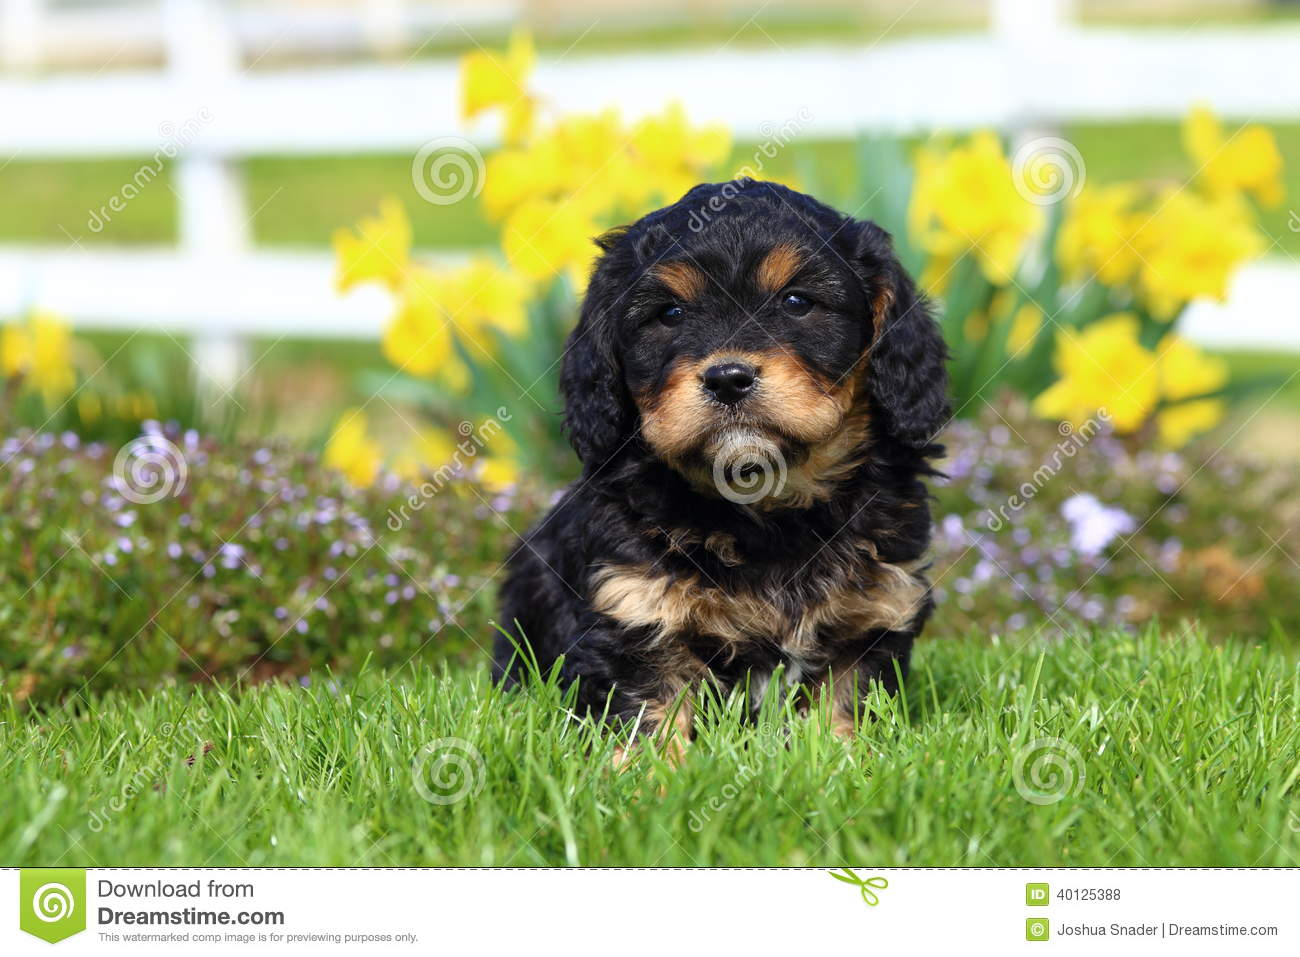 fluffy puppy sits in grass with flowers in background